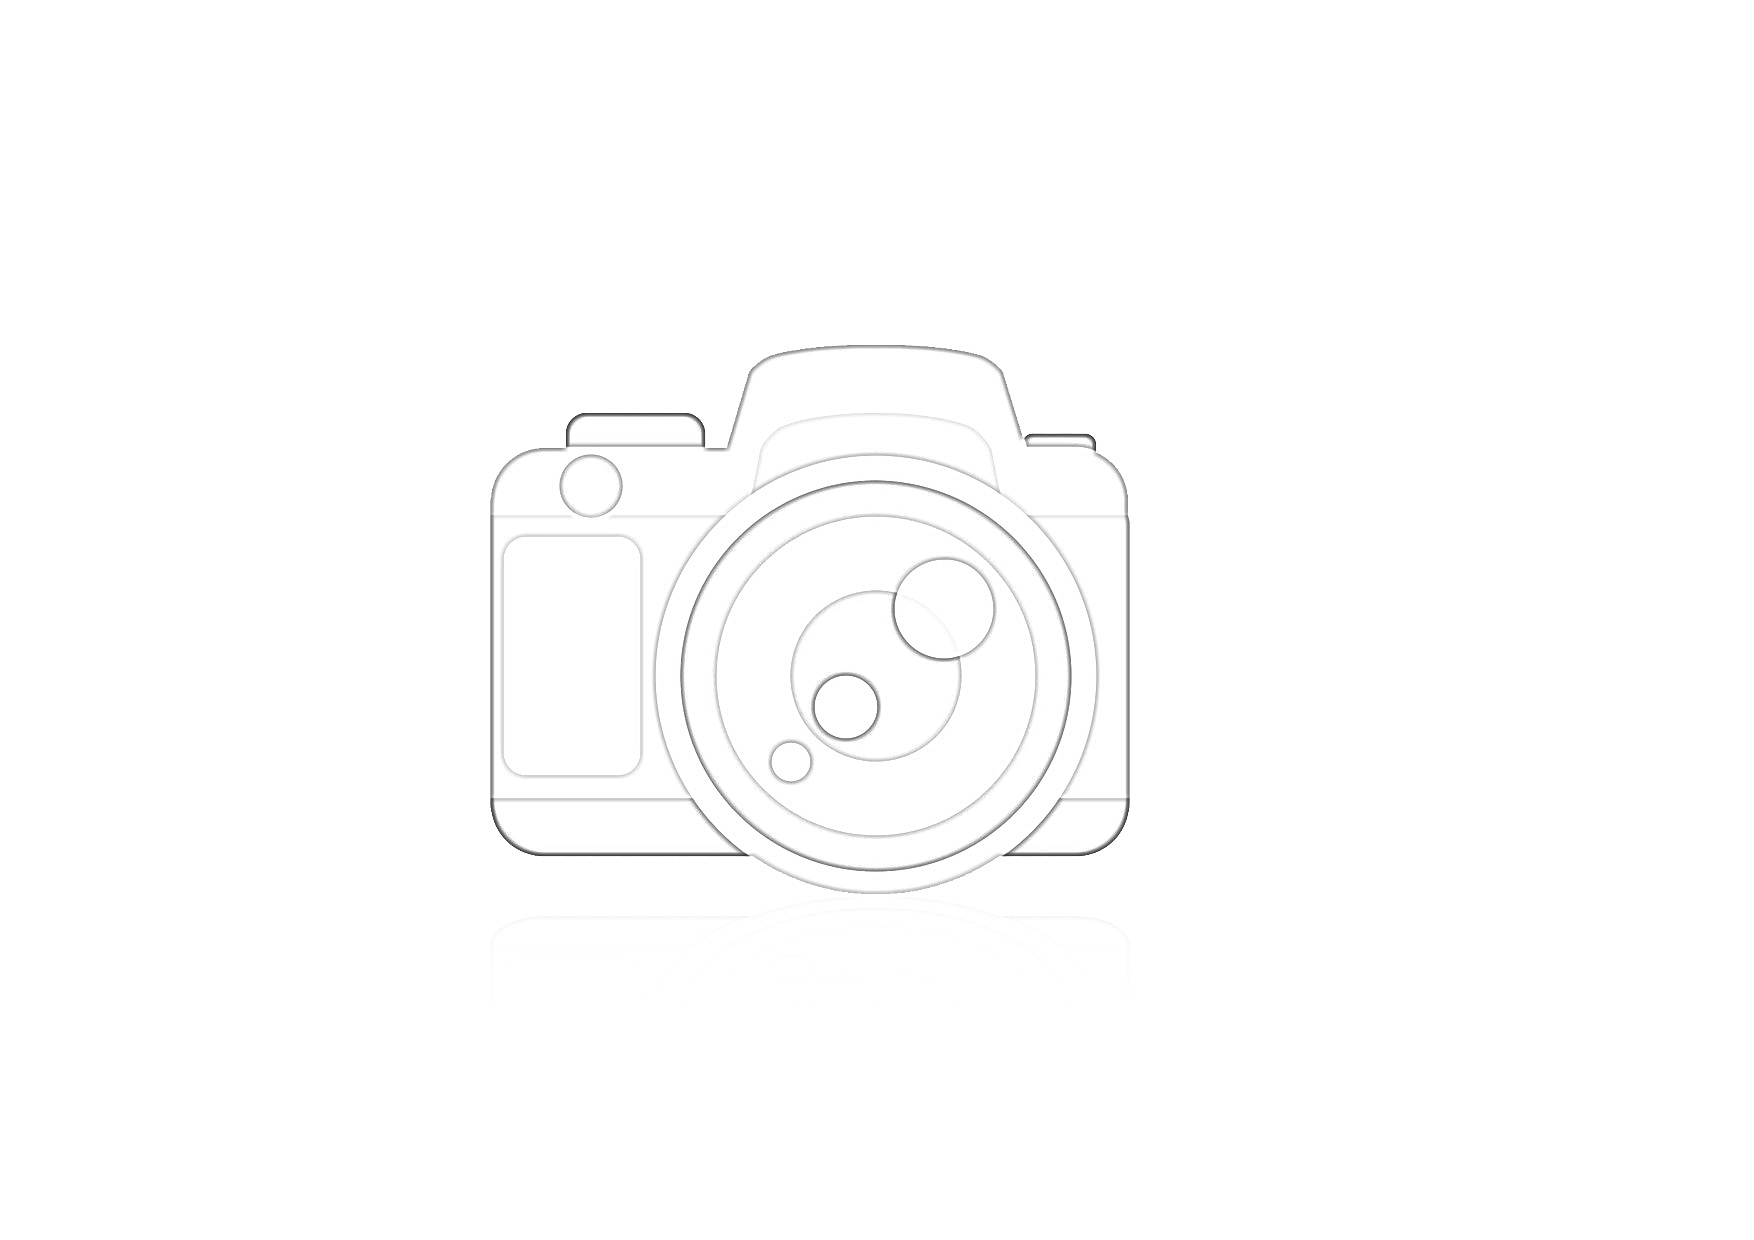 Convert Photo To Coloring Page Online Mimi Panda